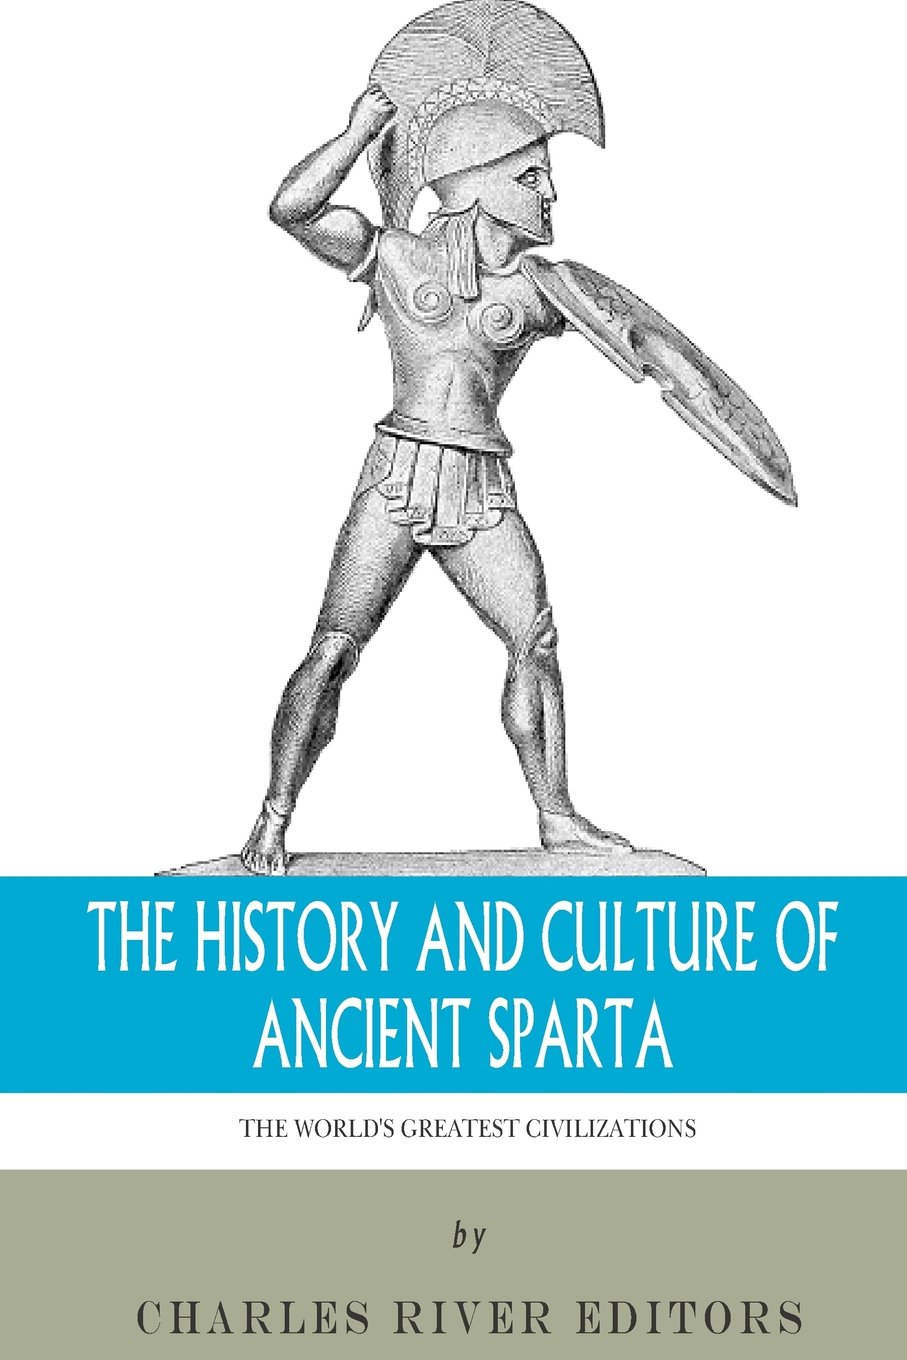 The World's Greatest Civilizations: The History and Culture of Ancient Sparta